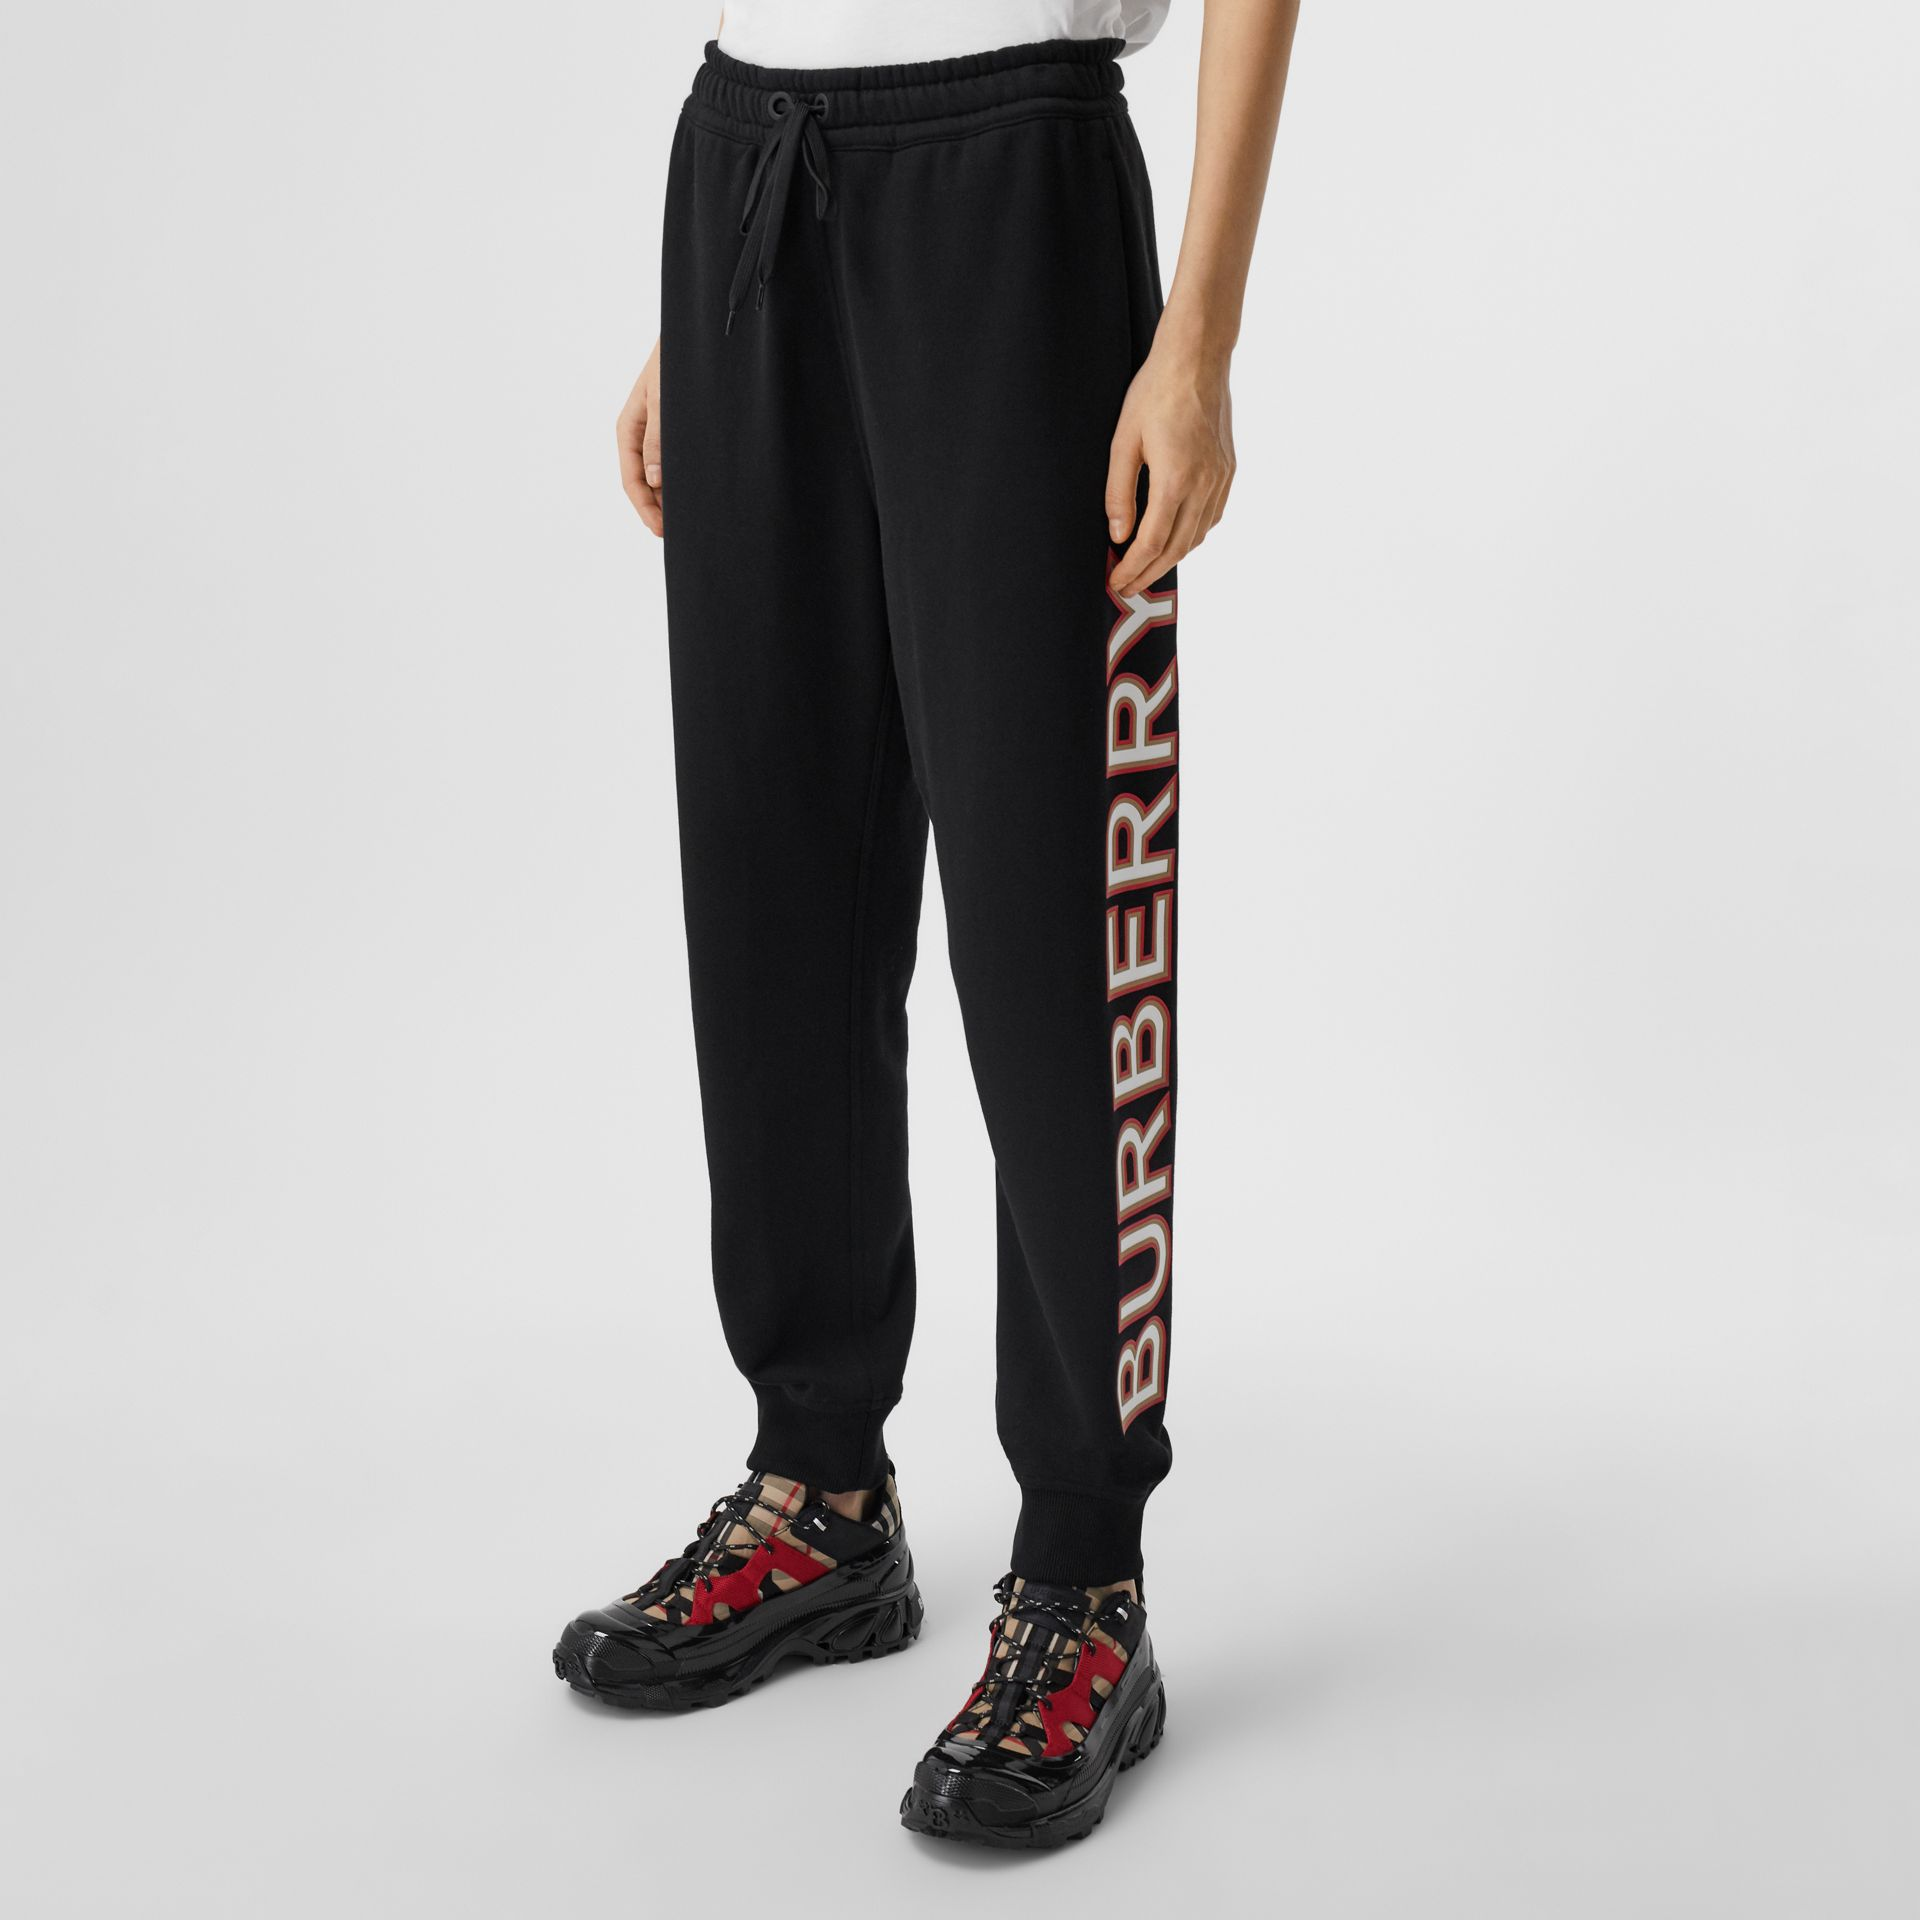 Logo Print Cotton Jogging Pants in Black - Women | Burberry - gallery image 4